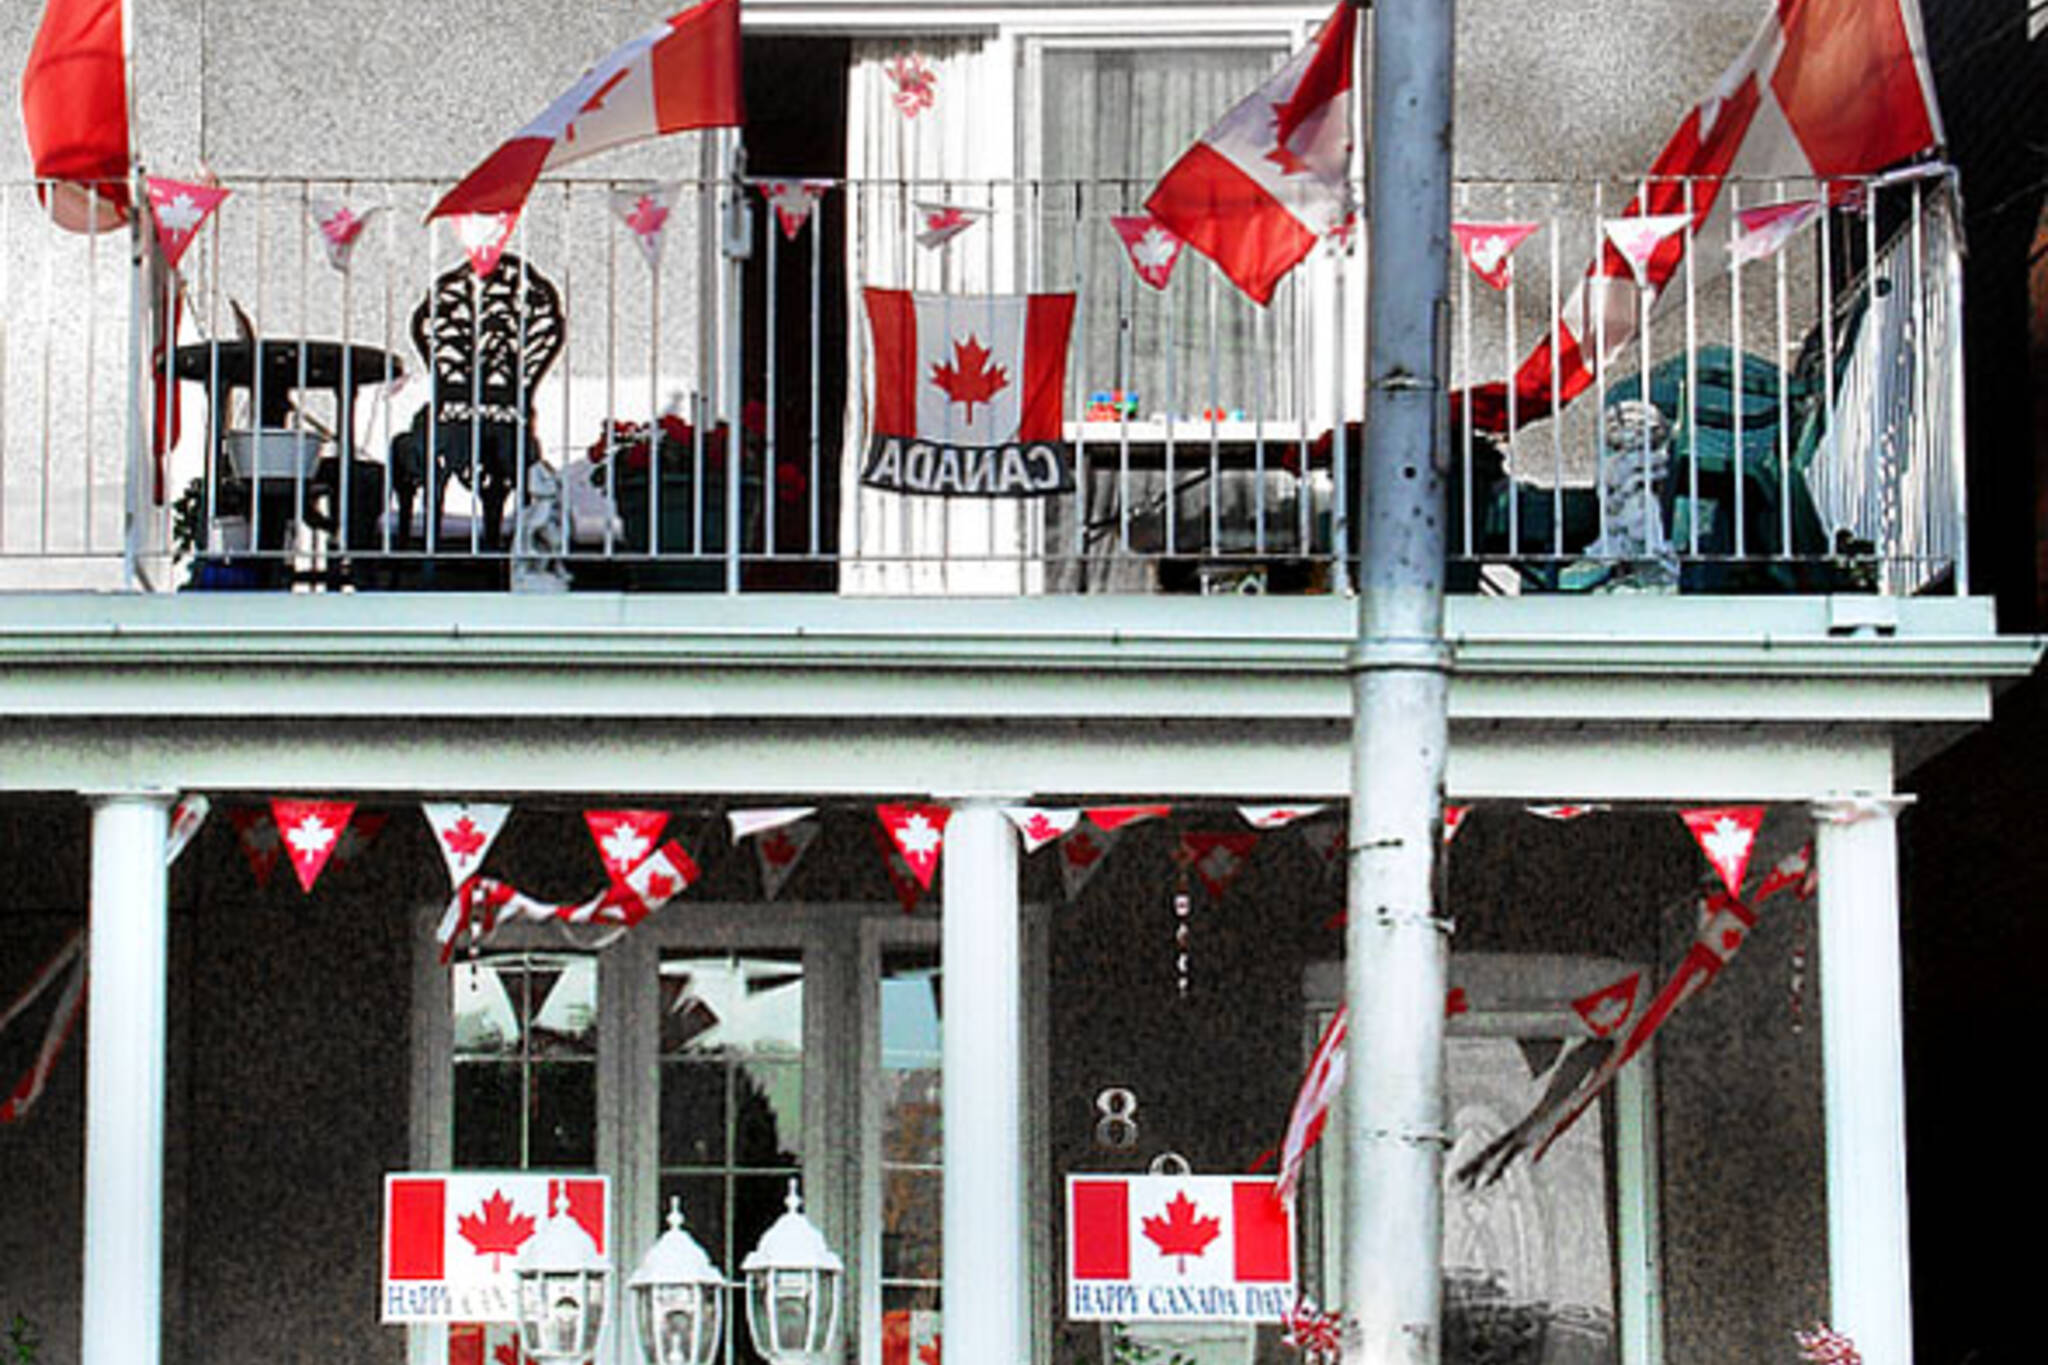 Canada Day decorations in Toronto